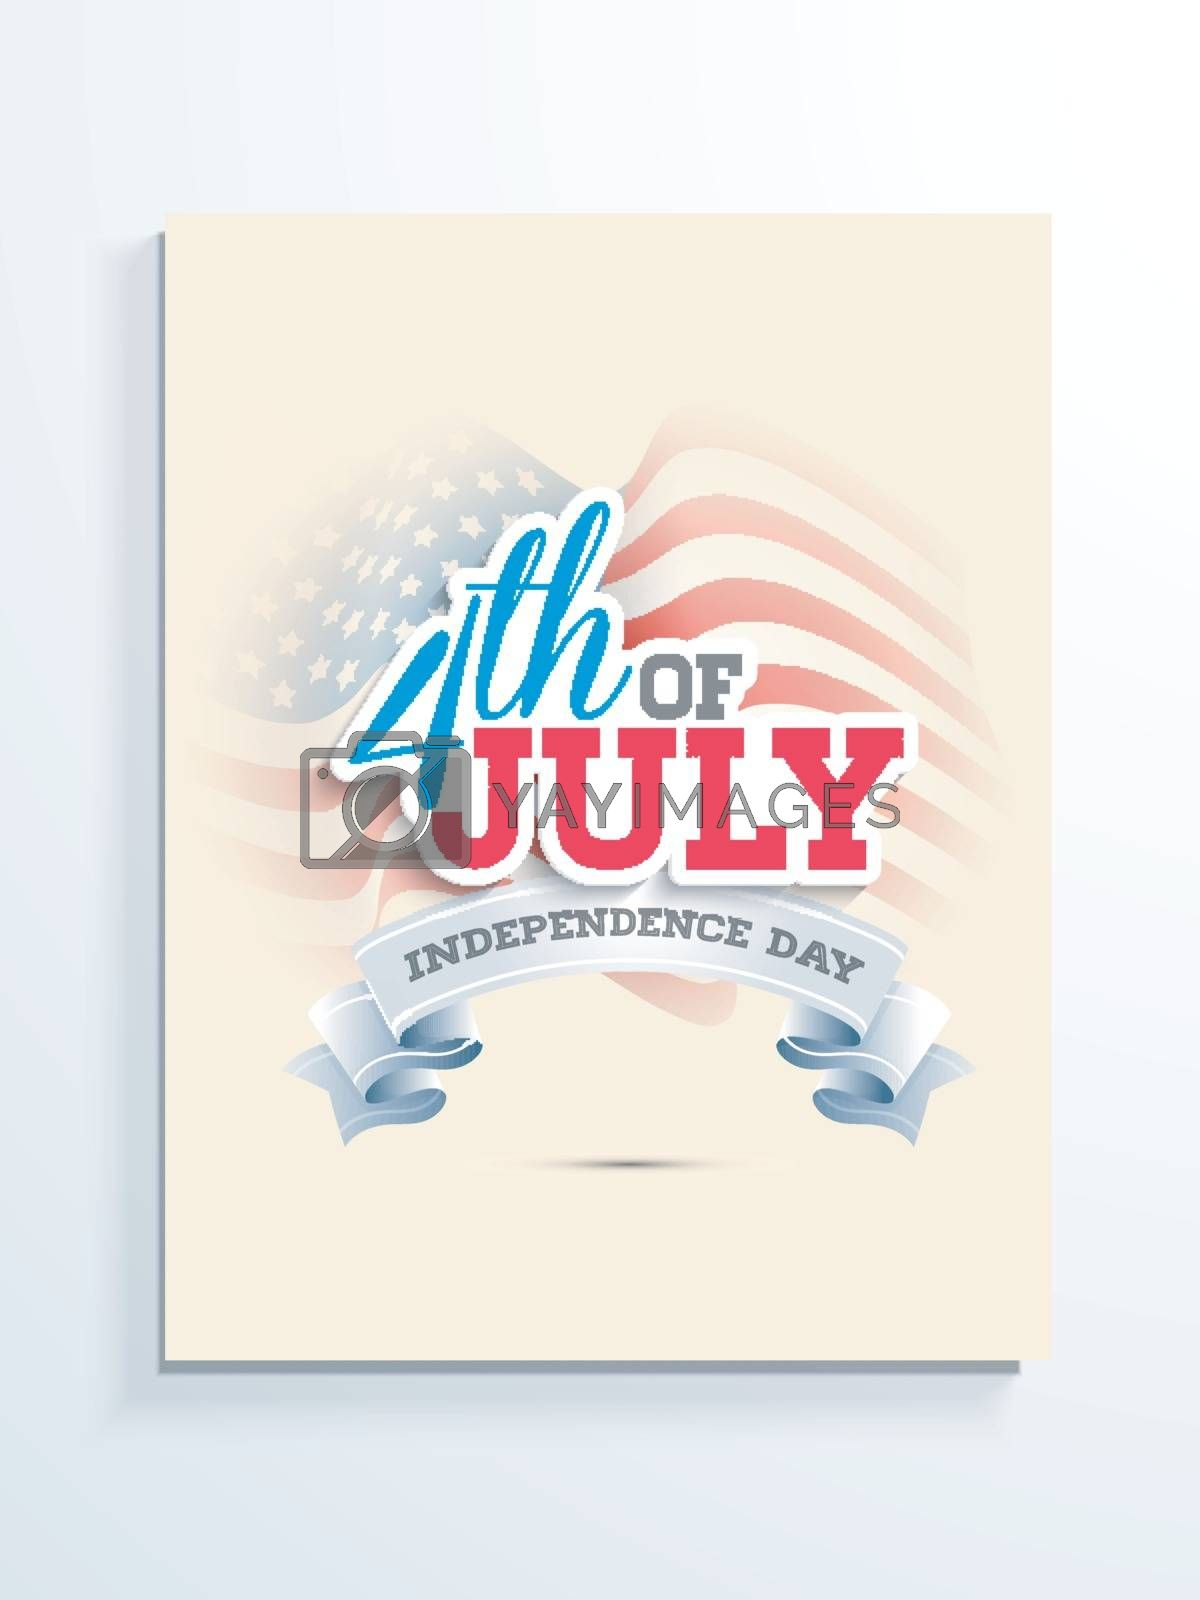 American Flag color text 4th of July with ribbon on wavy flag background. Template, Banner design for Independence Day celebration.